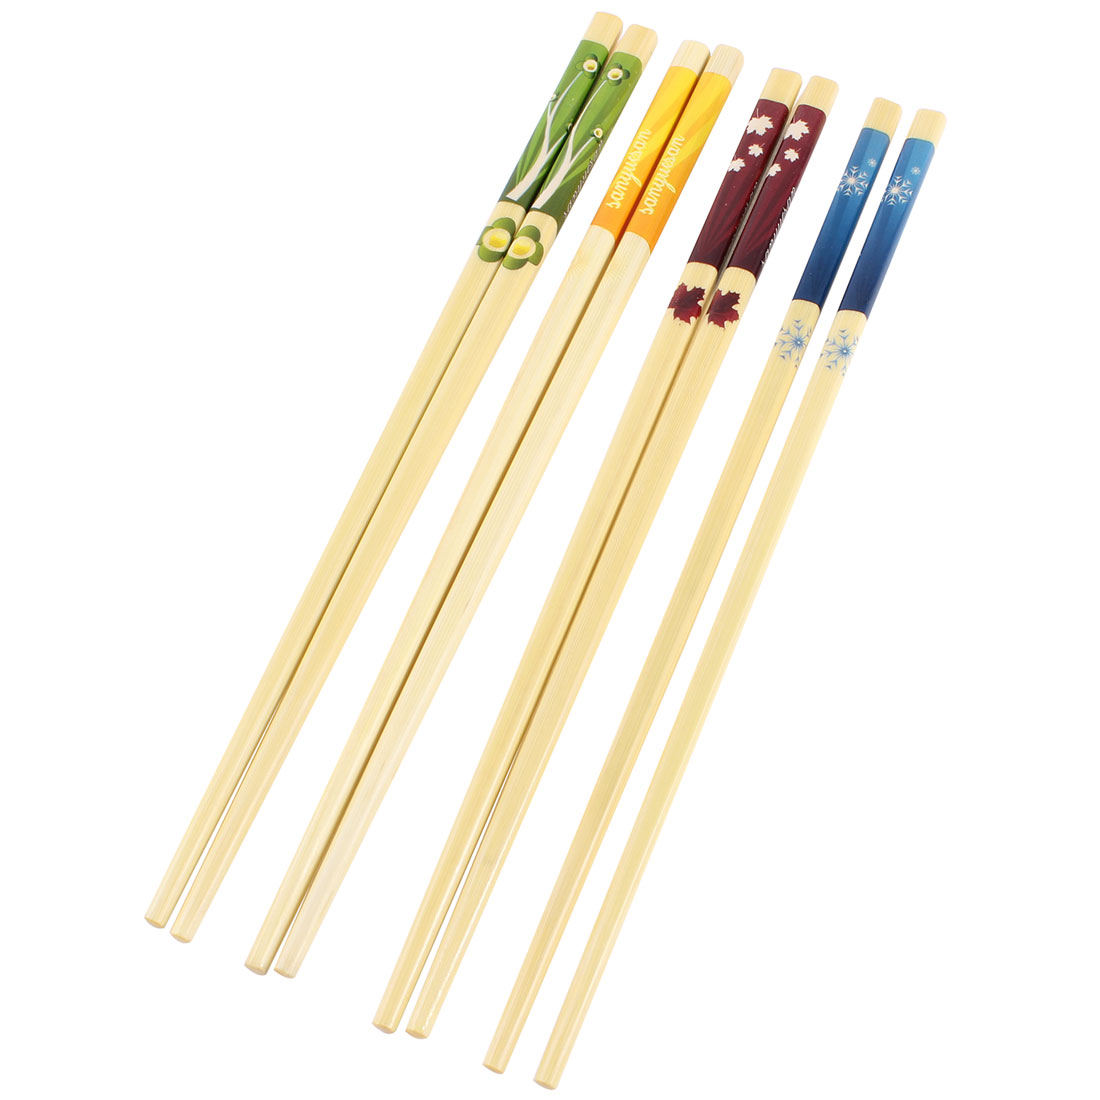 4 Pairs Handy Colorful Flower Pattern Chinese Wood Chopsticks Wooden Color